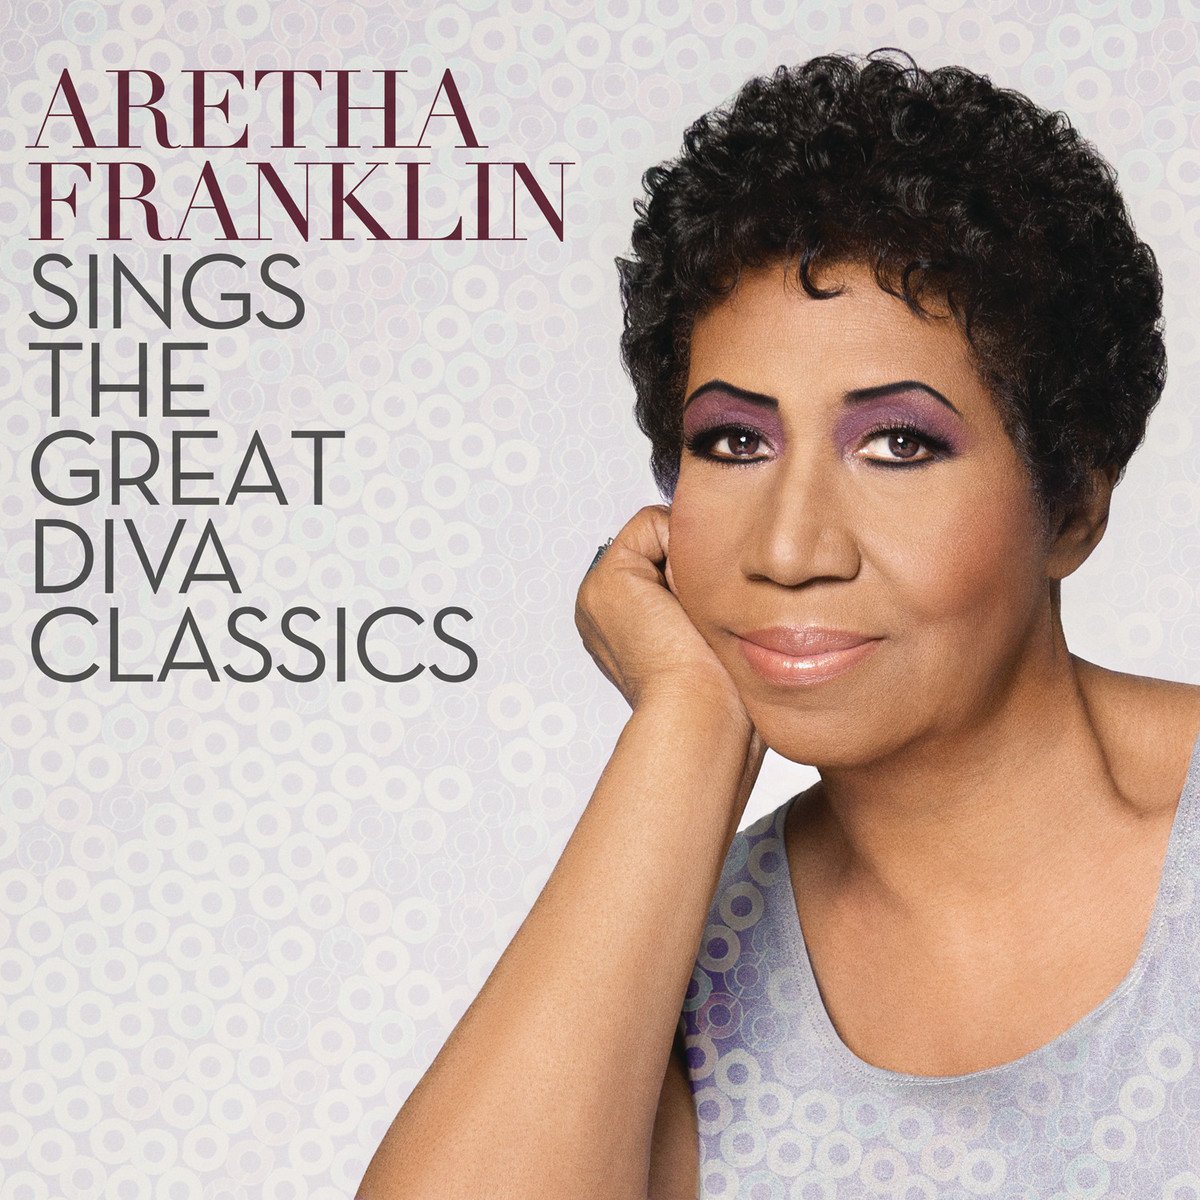 Aretha-Franklin-Sings-the-Greatest-Diva-Classics-2014-thatgrapejuice